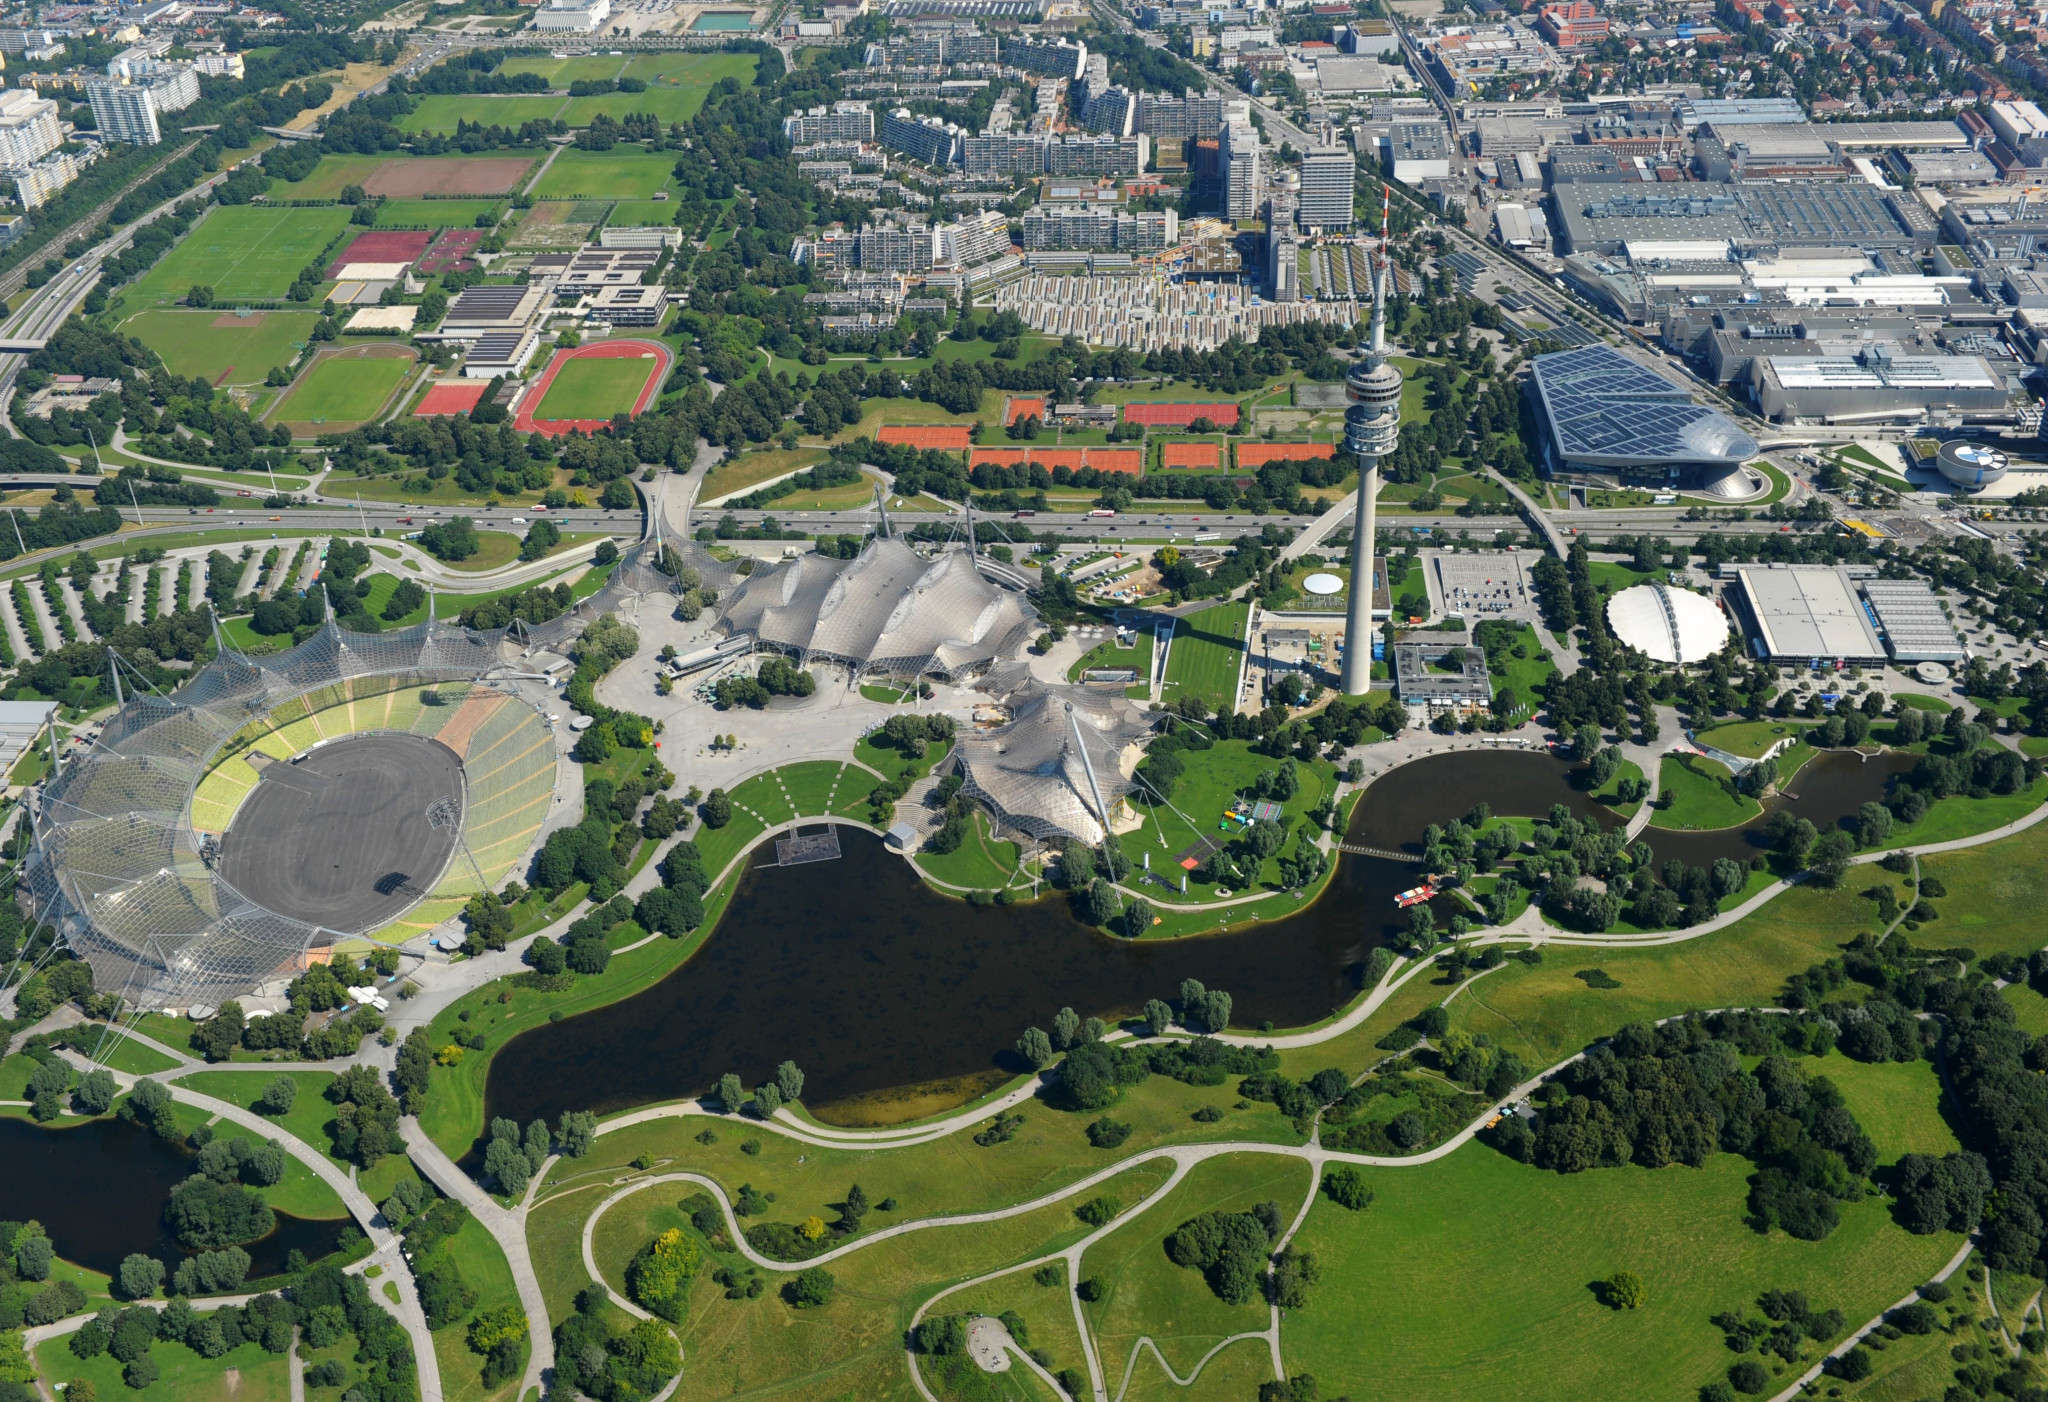 Study to assess impact of building project on Munich Olympiapark UNESCO World Heritage application